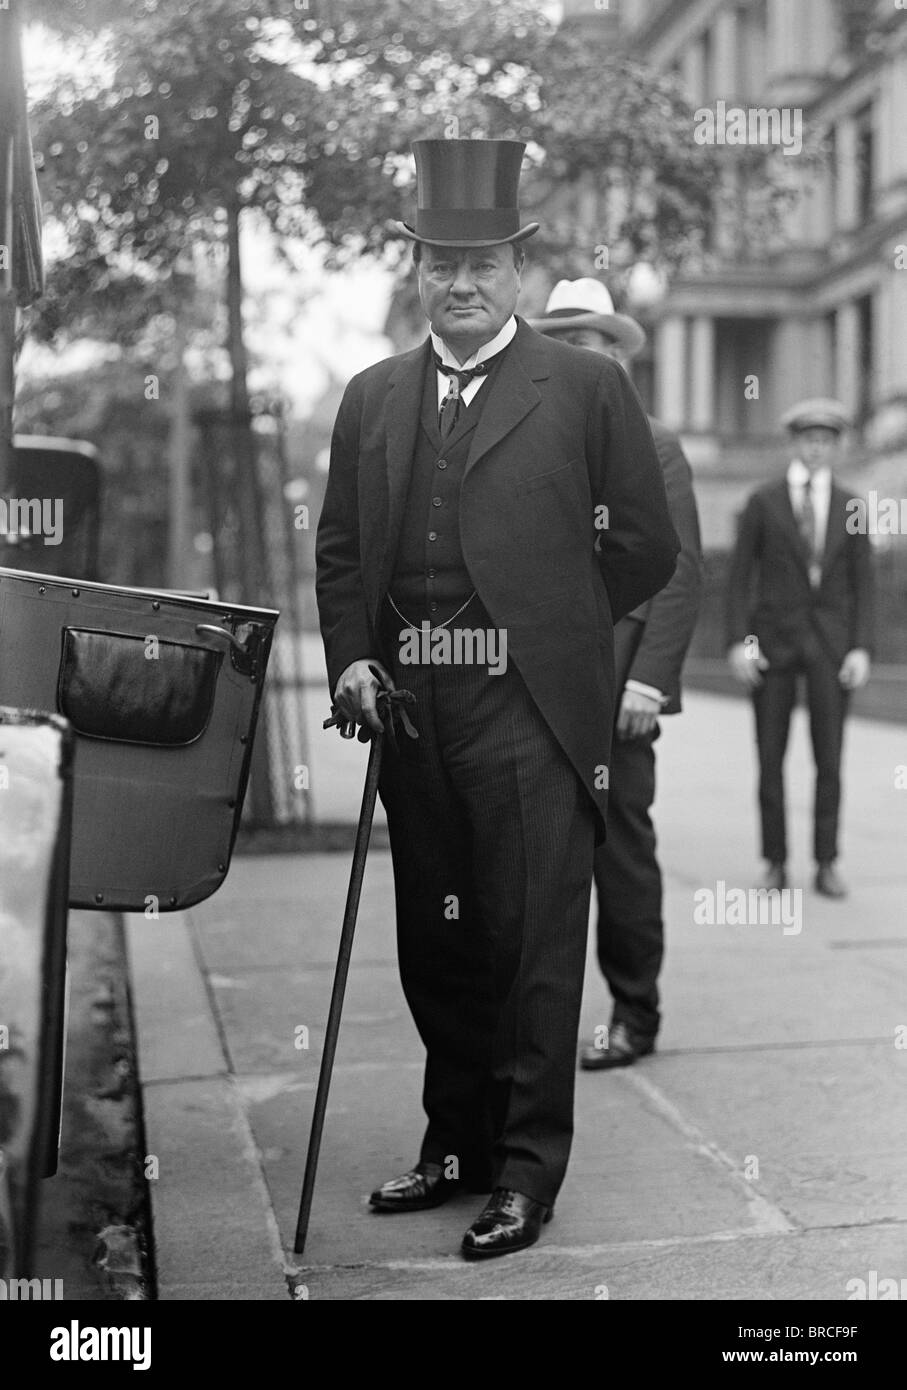 Vintage photo c1917 of British newspaper and publishing magnate Lord Northcliffe (Alfred Harmsworth, 1st Viscount - Stock Image